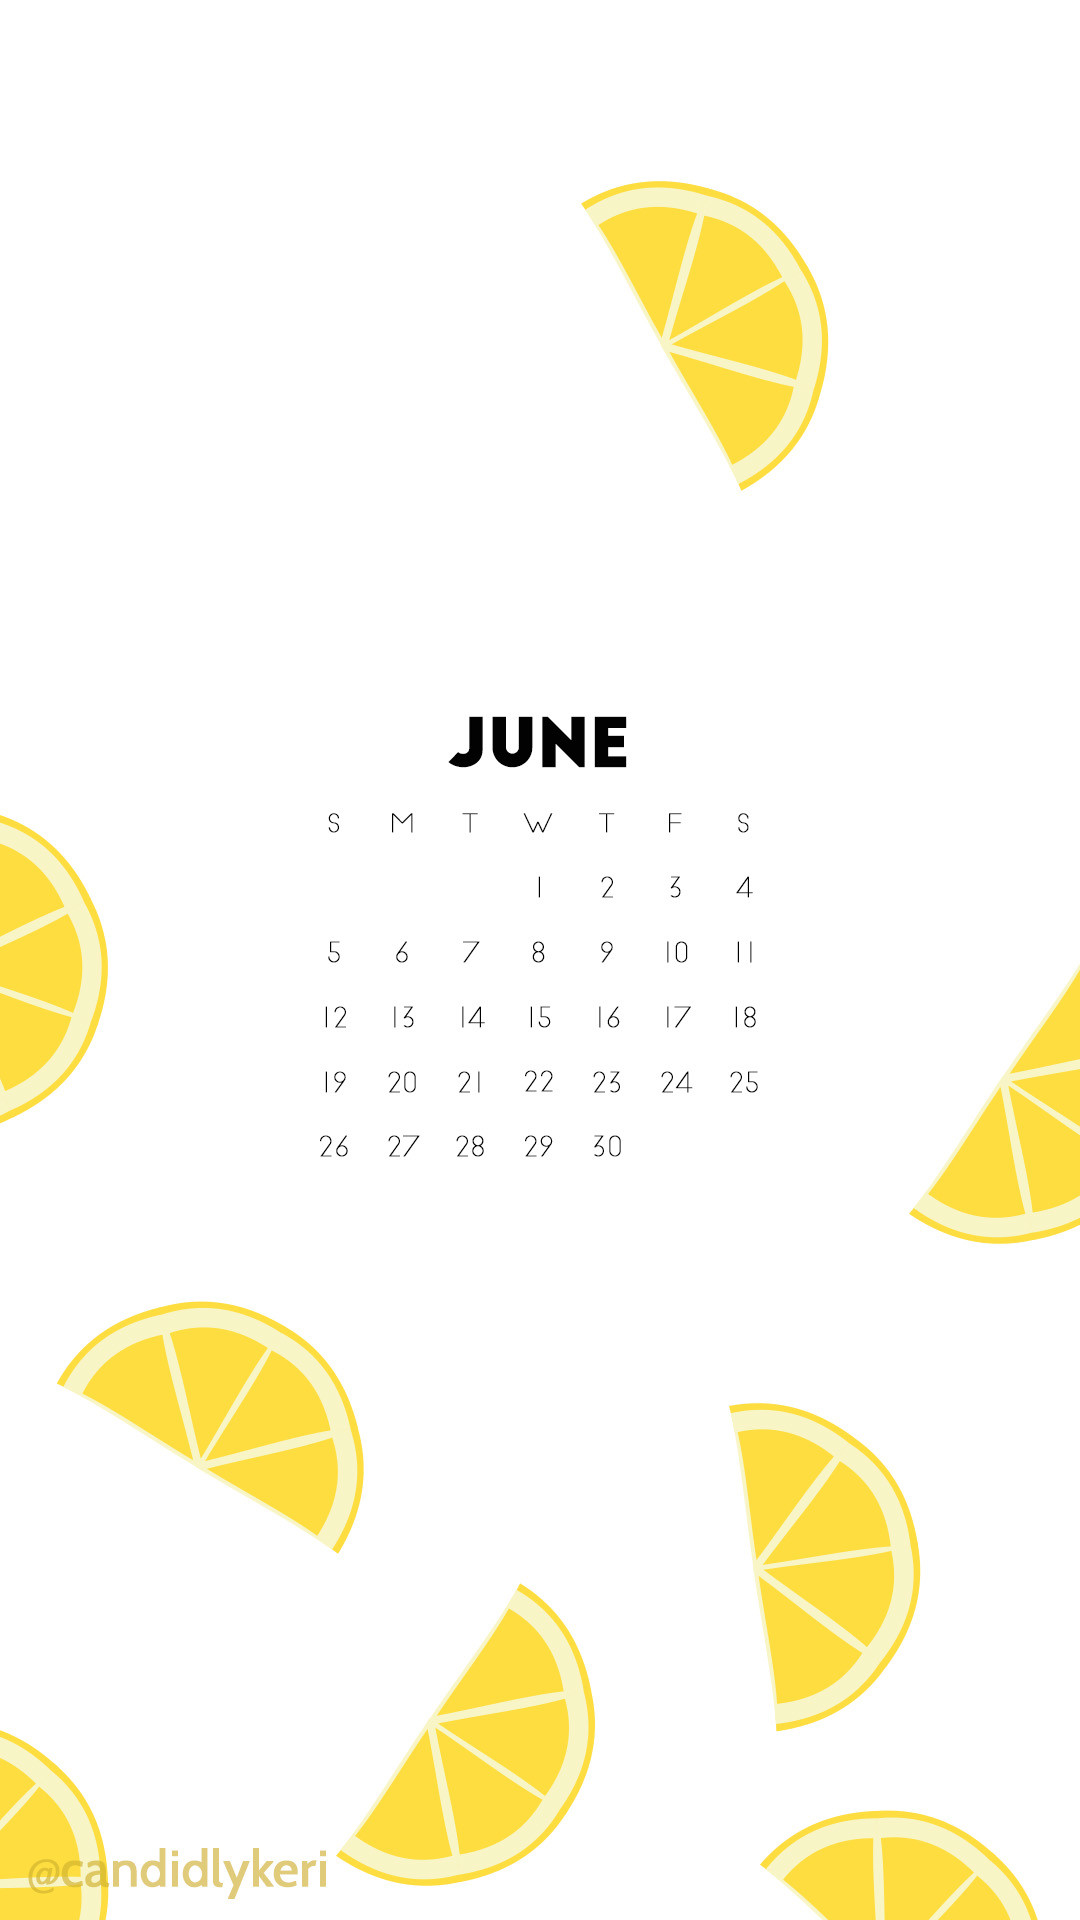 1080x1920 Lemon fun lemonade June 2016 calendar wallpaper free download for iPhone  android or desktop background on